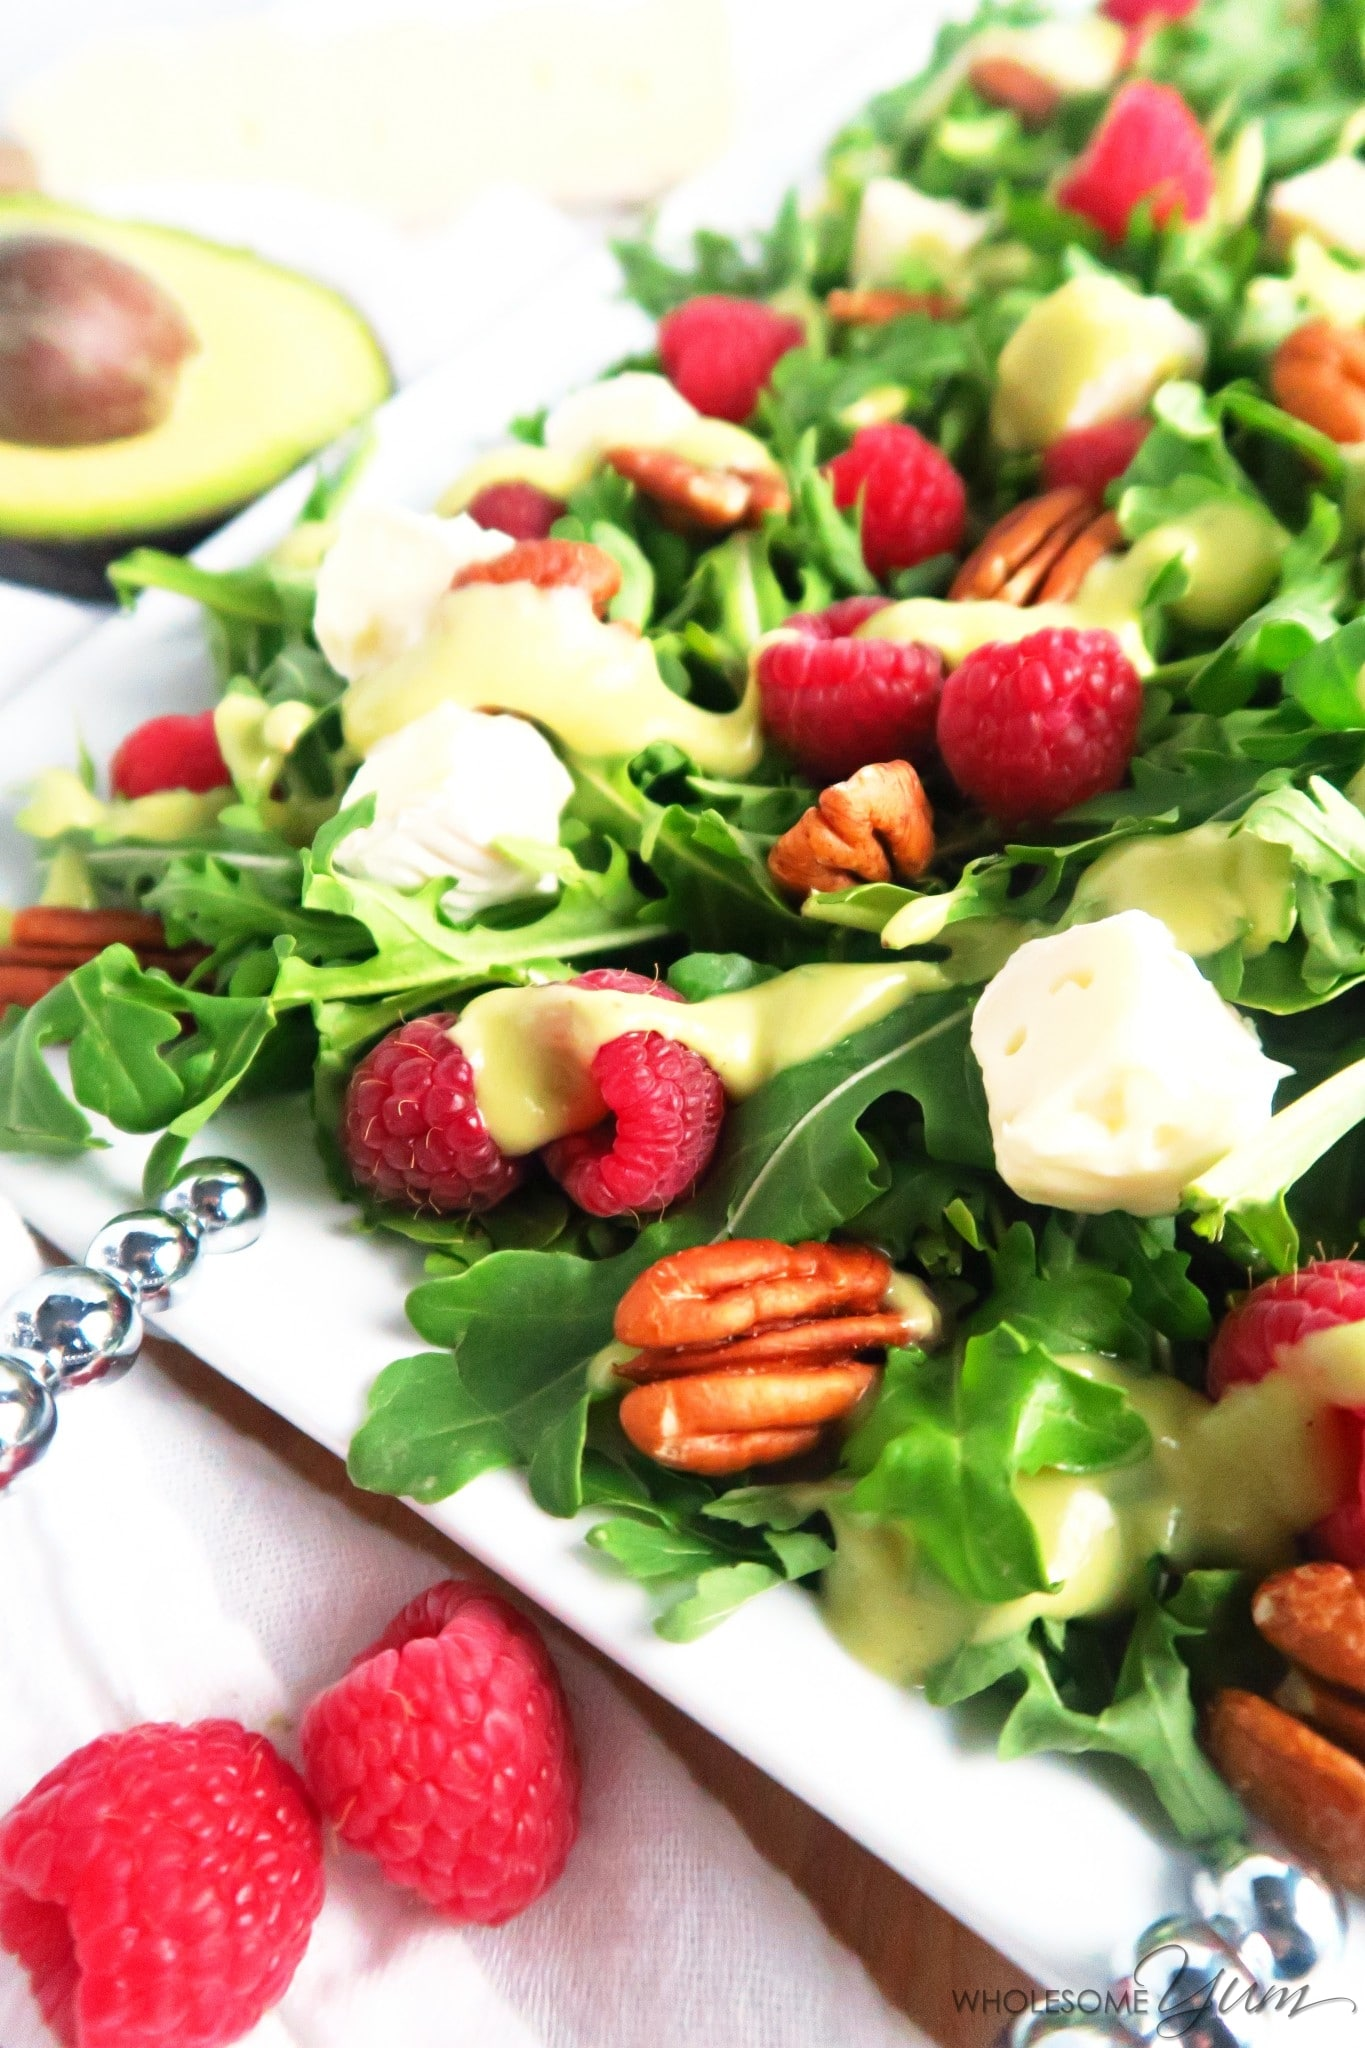 Healthy Summer Dinner Recipes - raspberry brie salad with avocado dressing